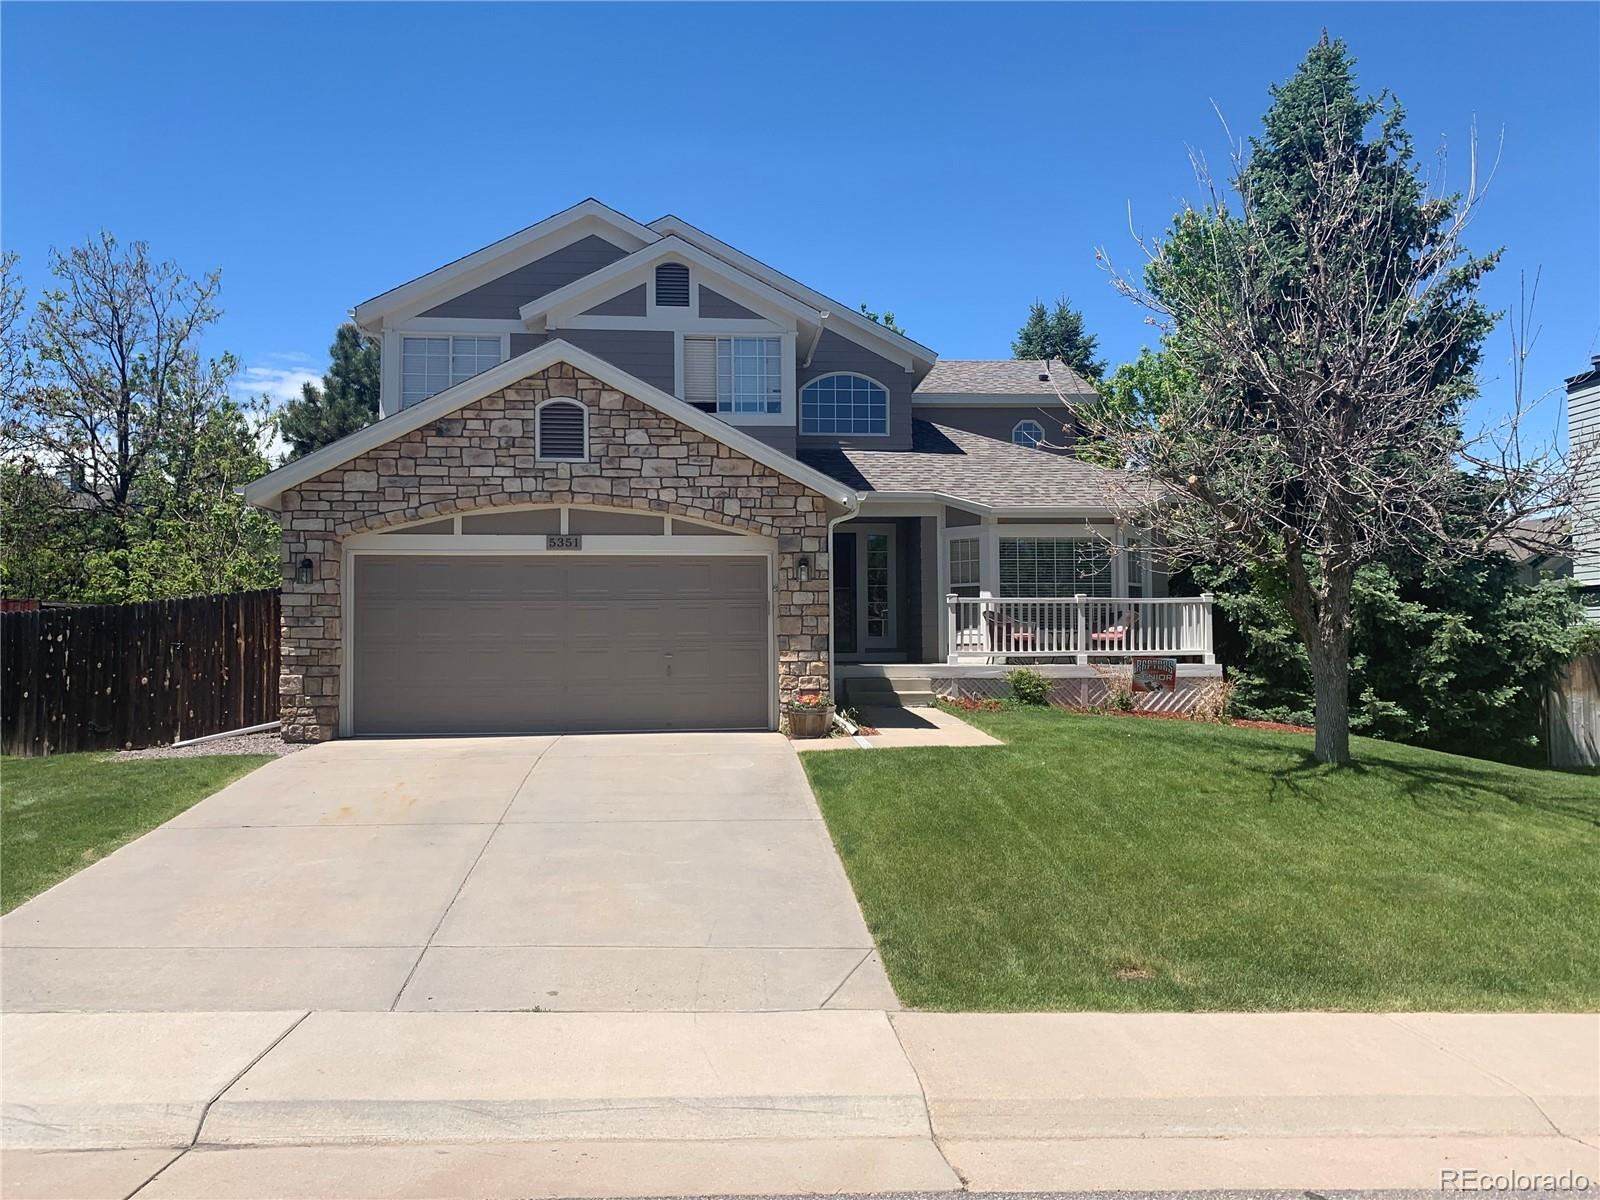 5351 S Dunkirk Way, Centennial, CO 80015 - #: 4194925